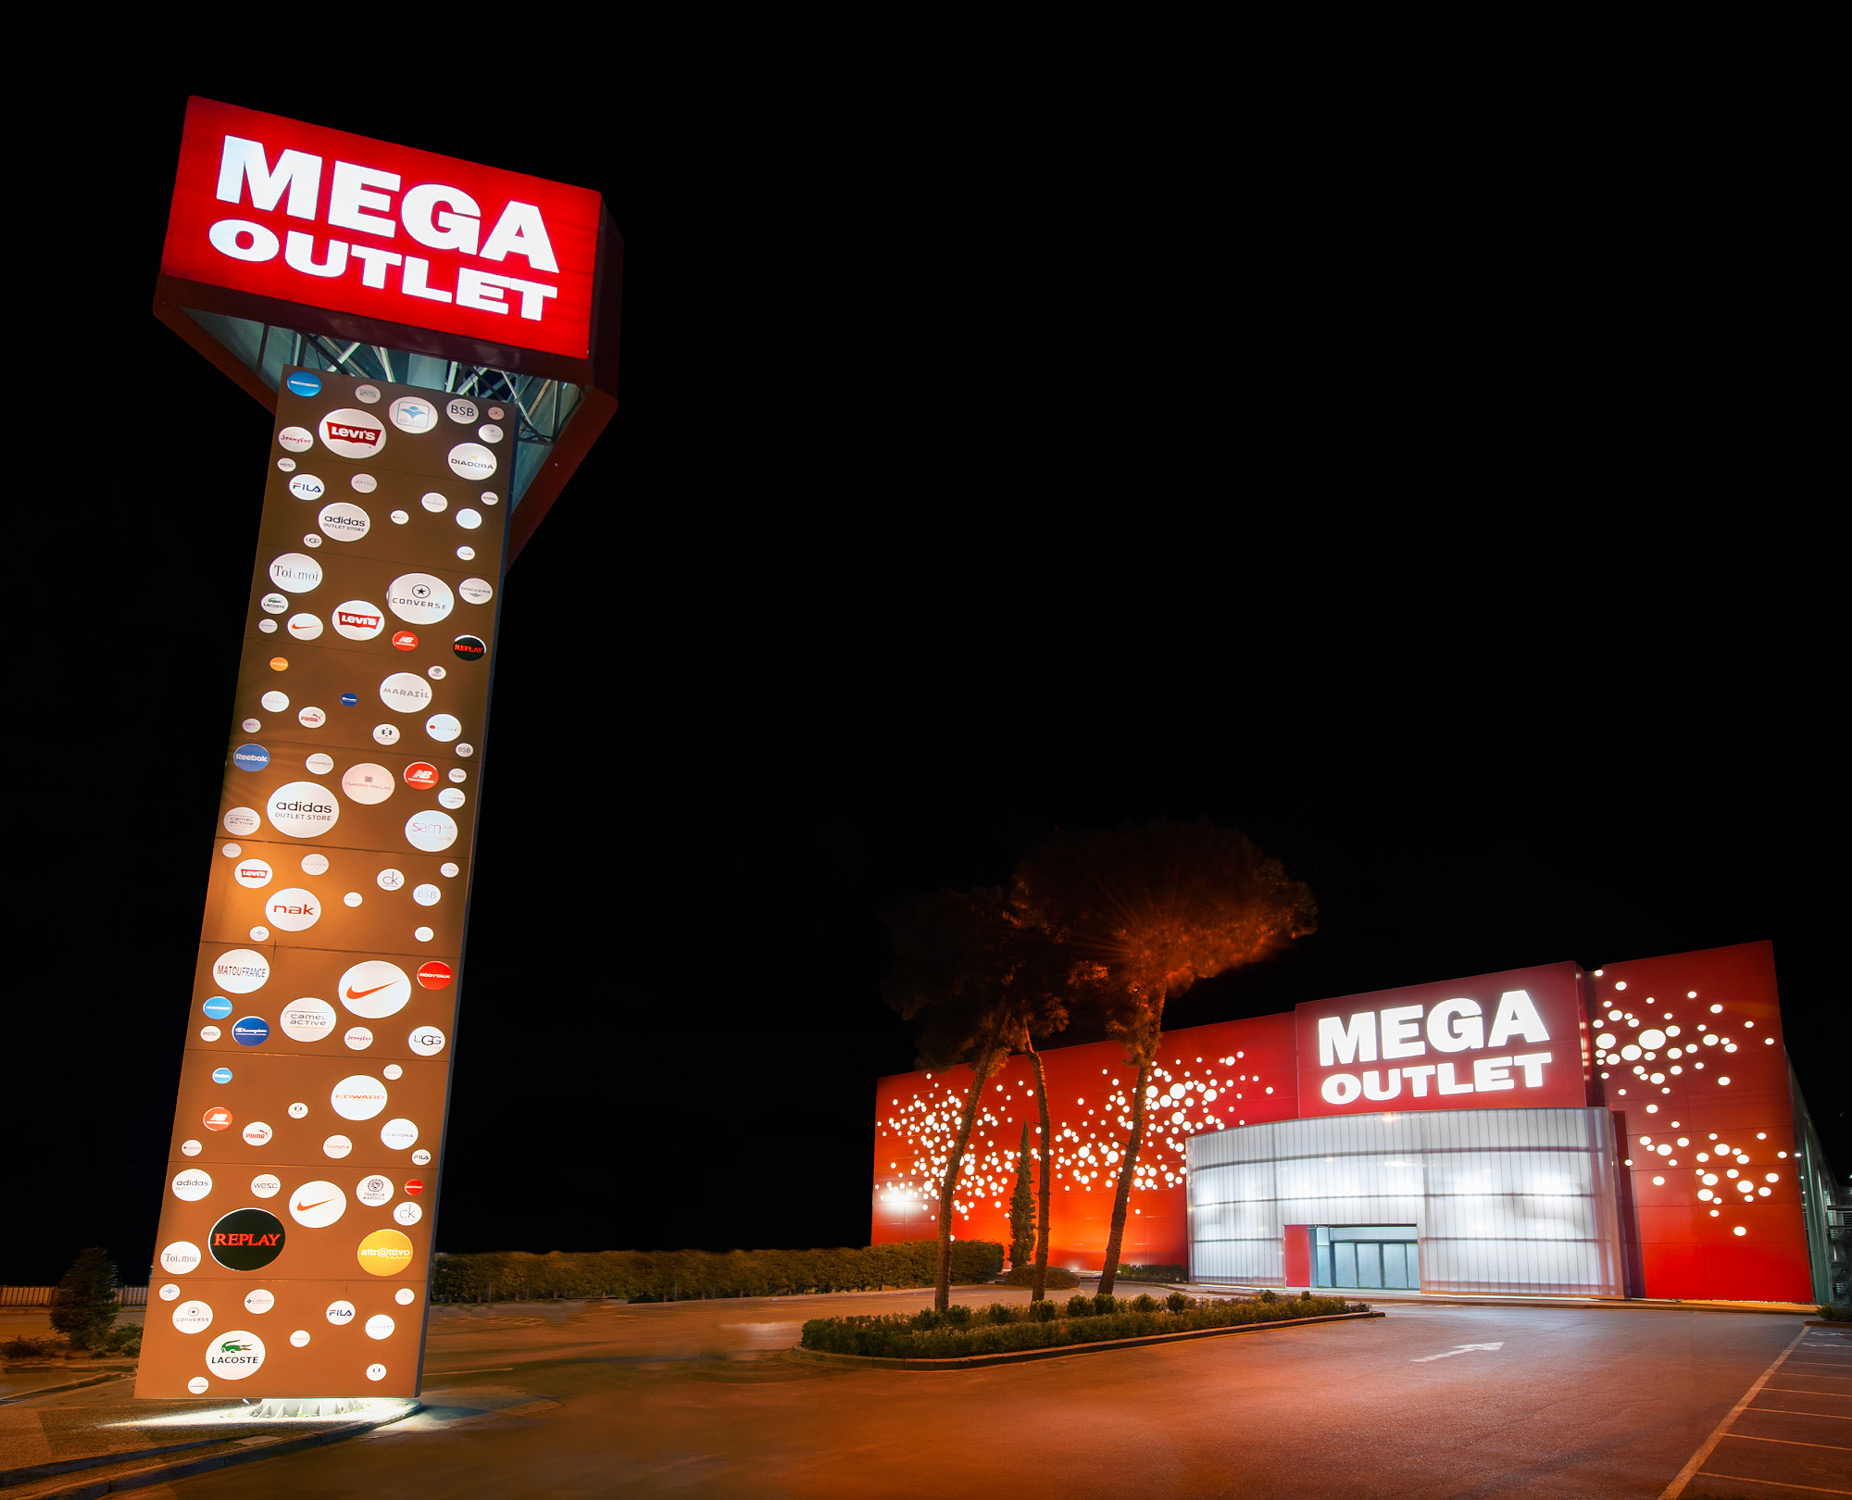 ff8fba1dcf Mega Outlet. Discount shopping center